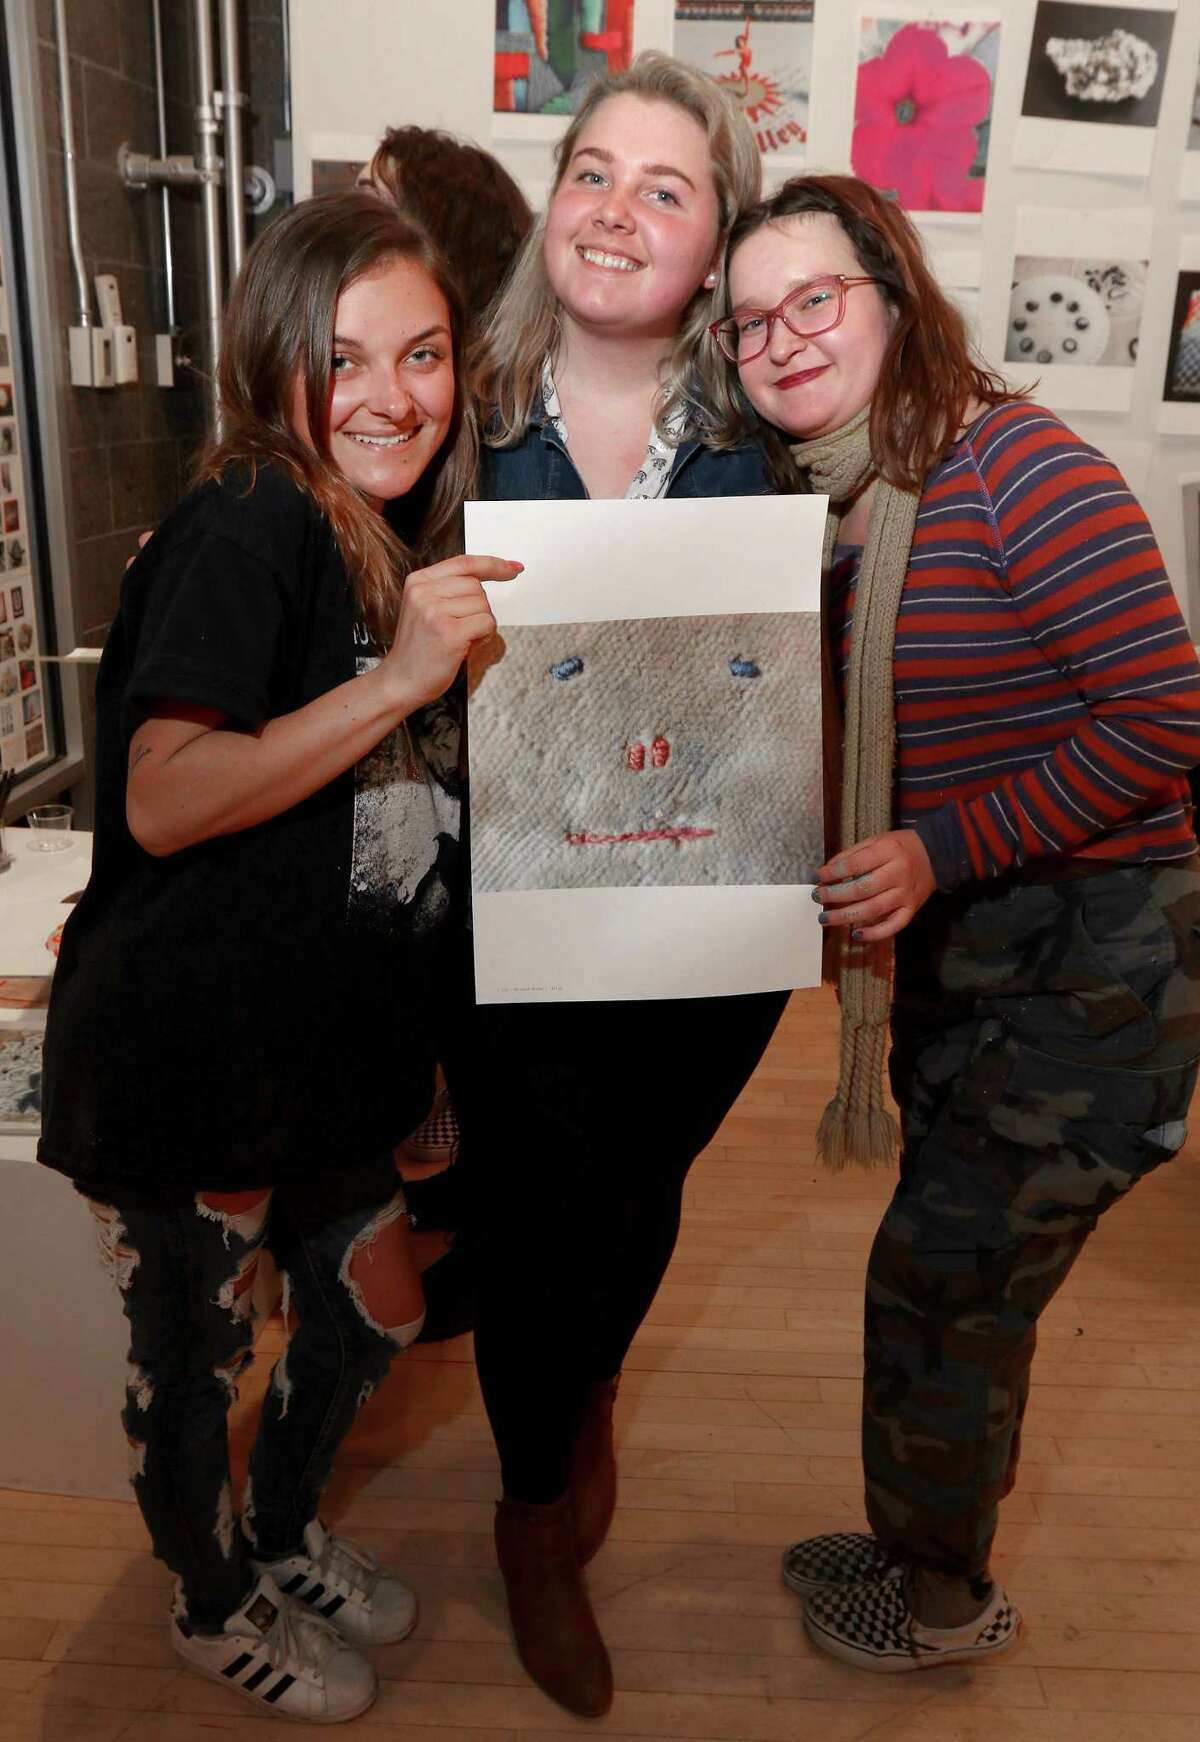 Albany, NY - March 16, 2018 - (Photo by Joe Putrock/Special to the Times Union) - (l to r) Victoria Stockman, Madison Scisci and Lea Diep hold a piece of work by exhibiting photographer Polly Apfelbaum during The 40th Annual Photo Regional: Effects That Aren?'t Special opening reception at the Opalka Gallery on the Sage College of Albany campus.